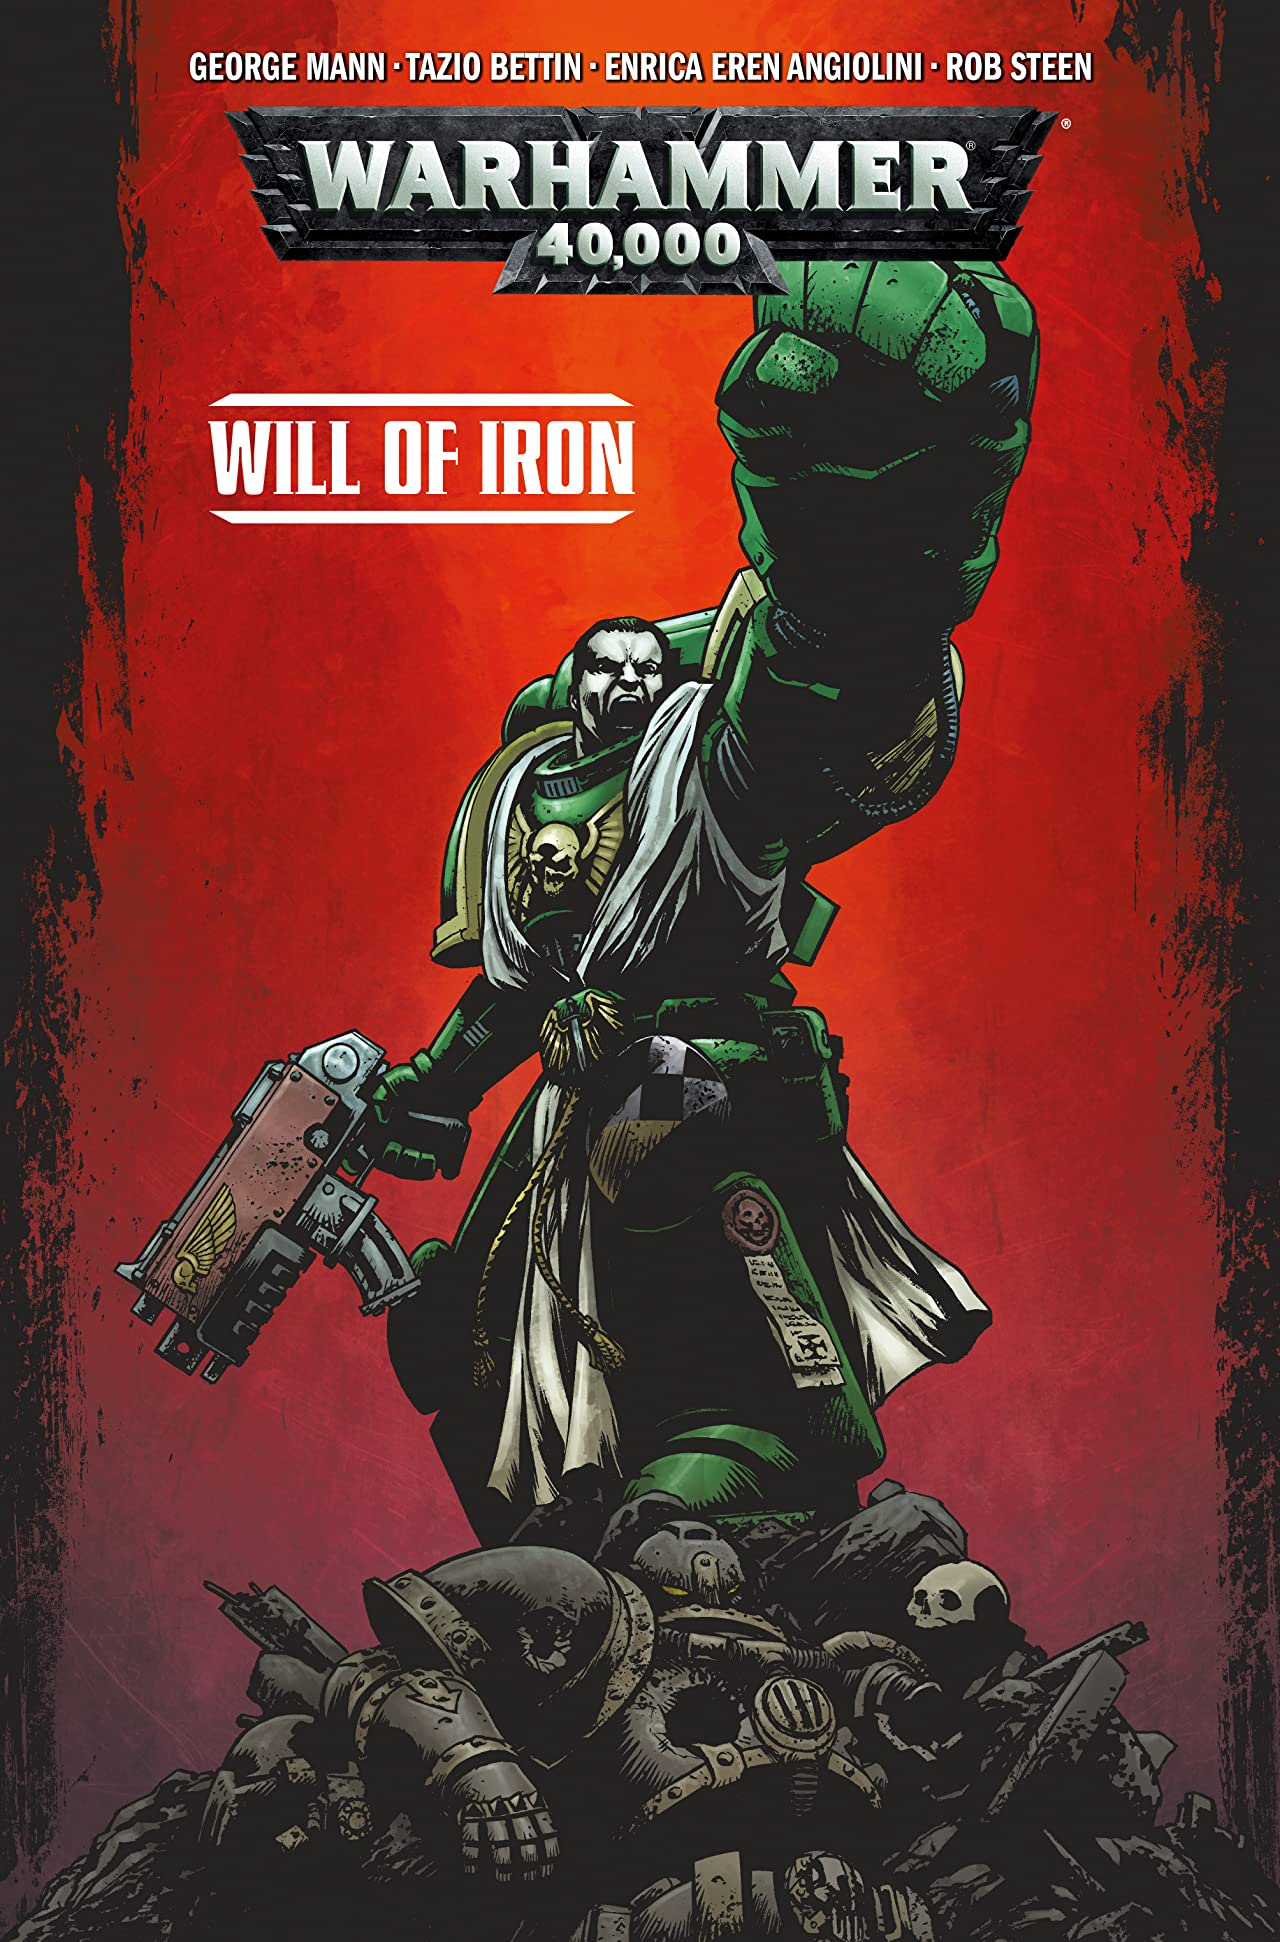 Warhammer 40,000: Will of Iron #0